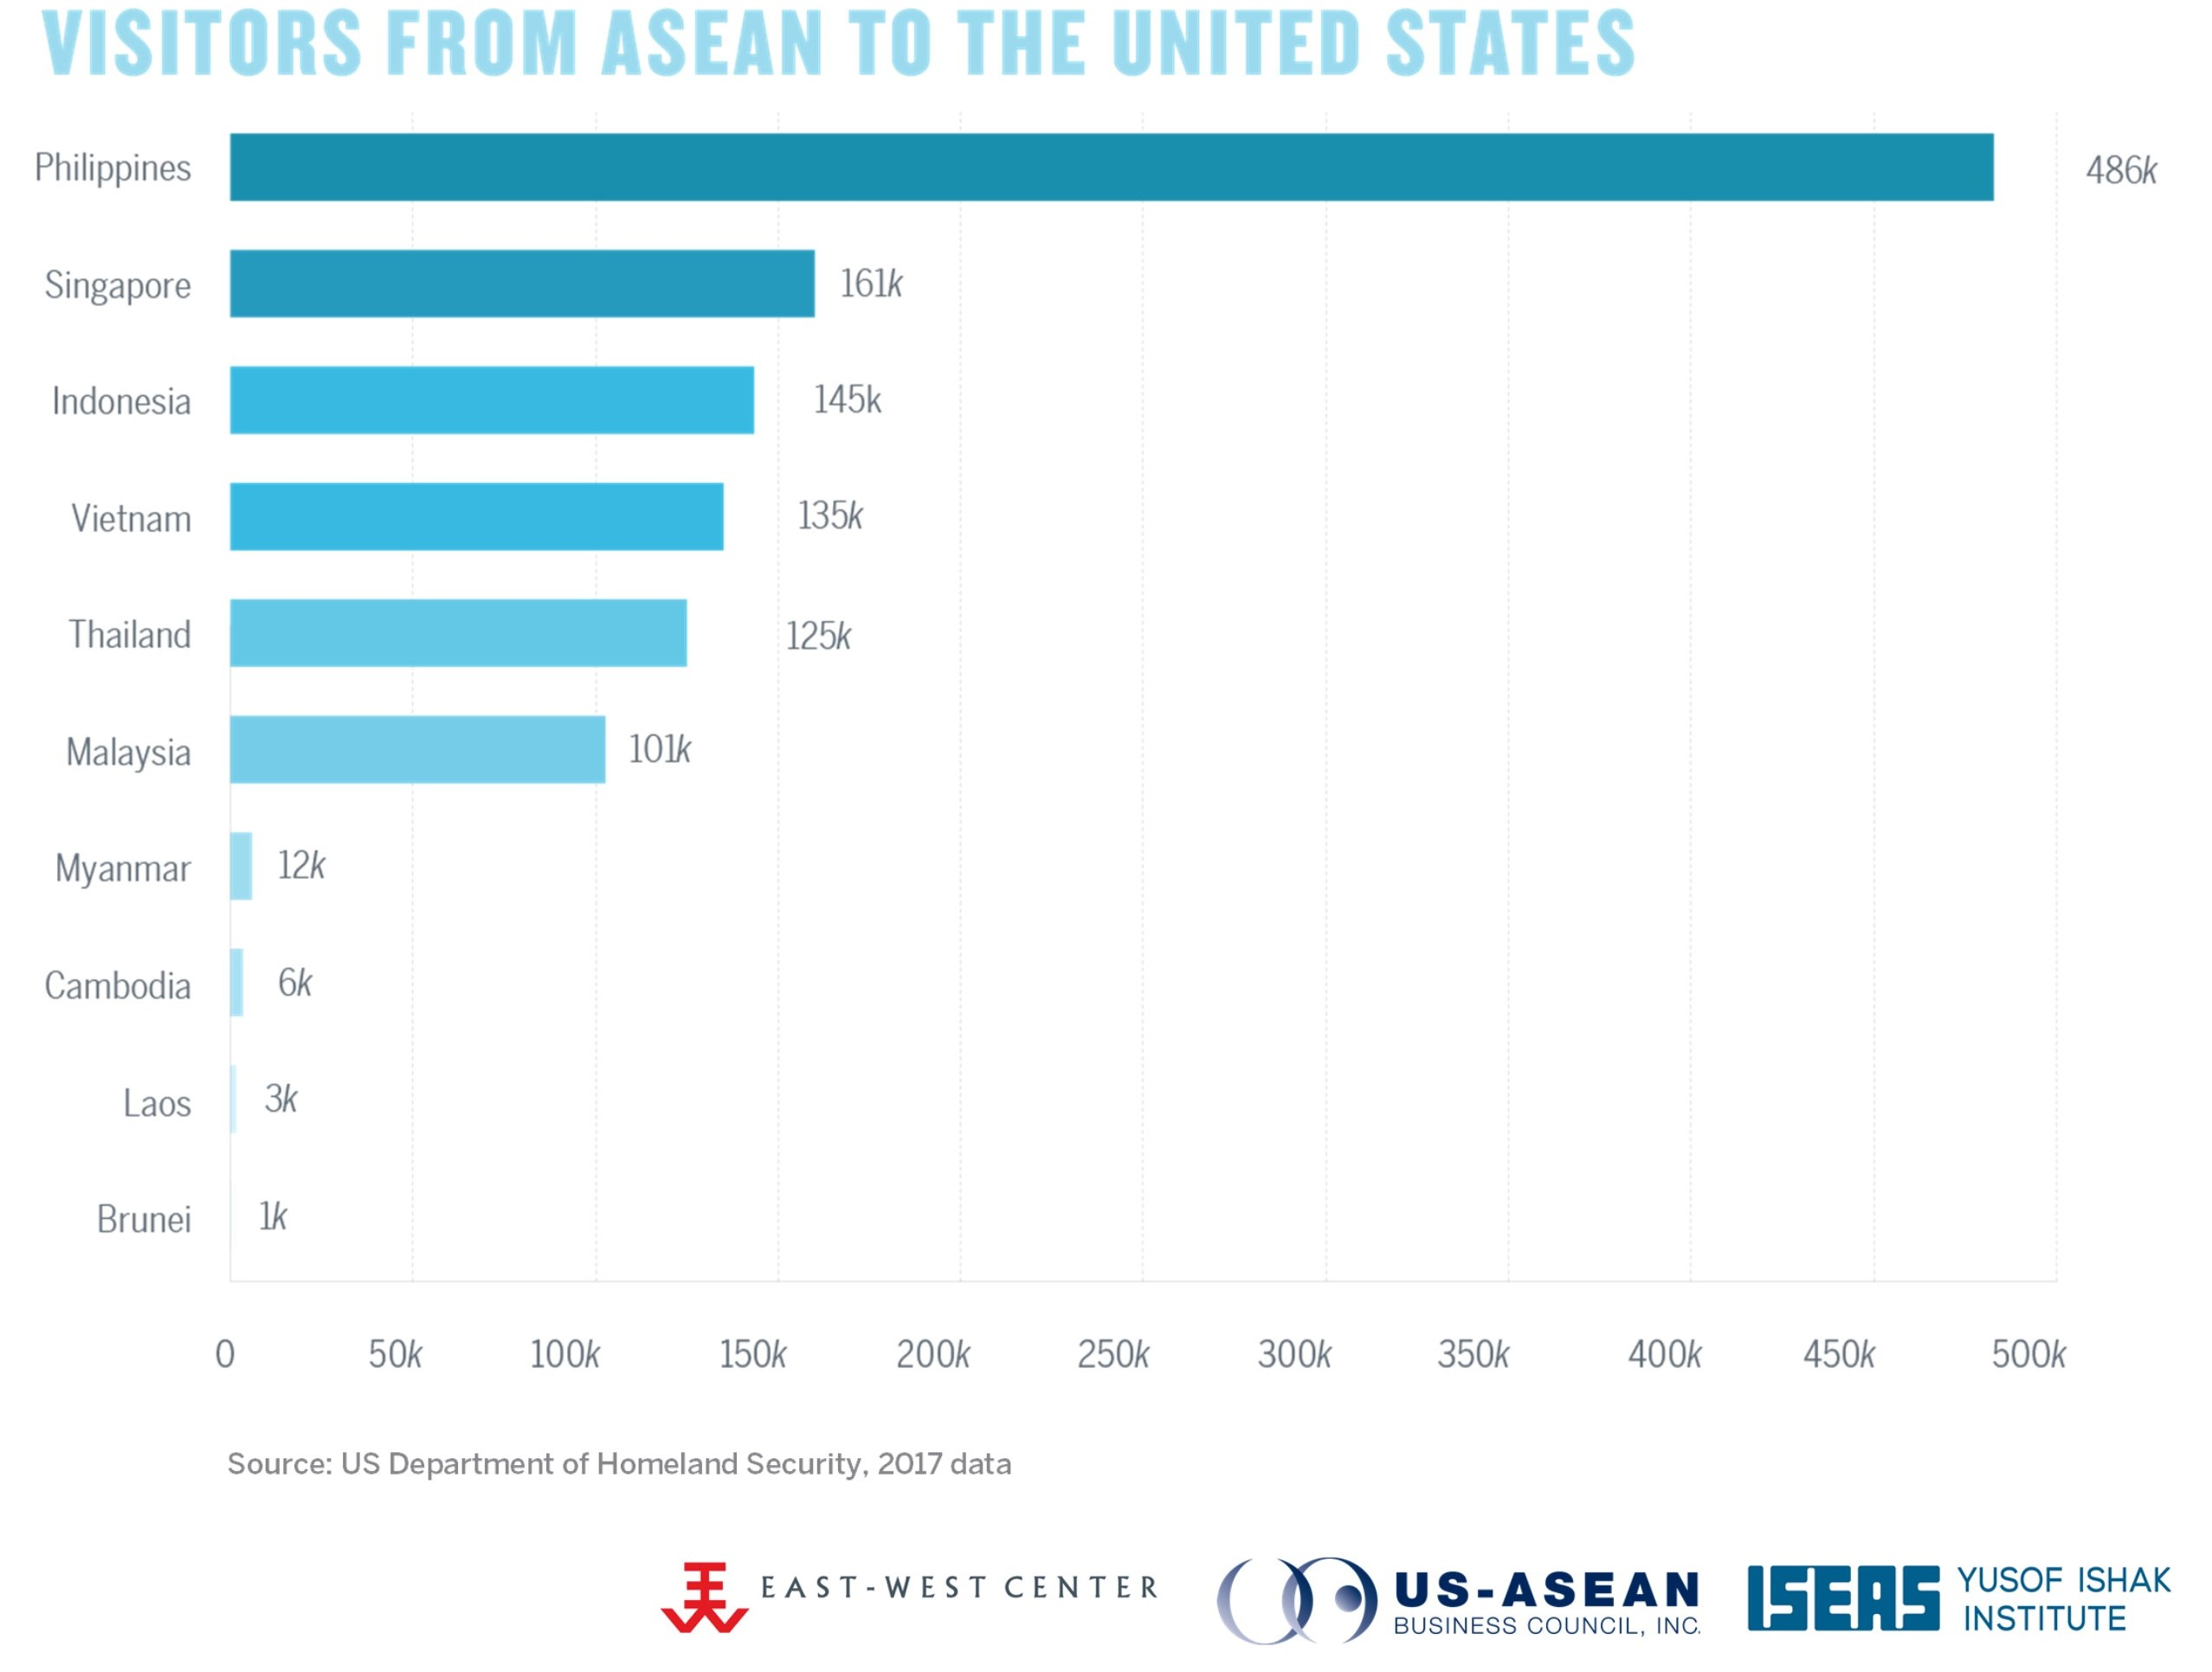 Visitors from ASEAN to the US